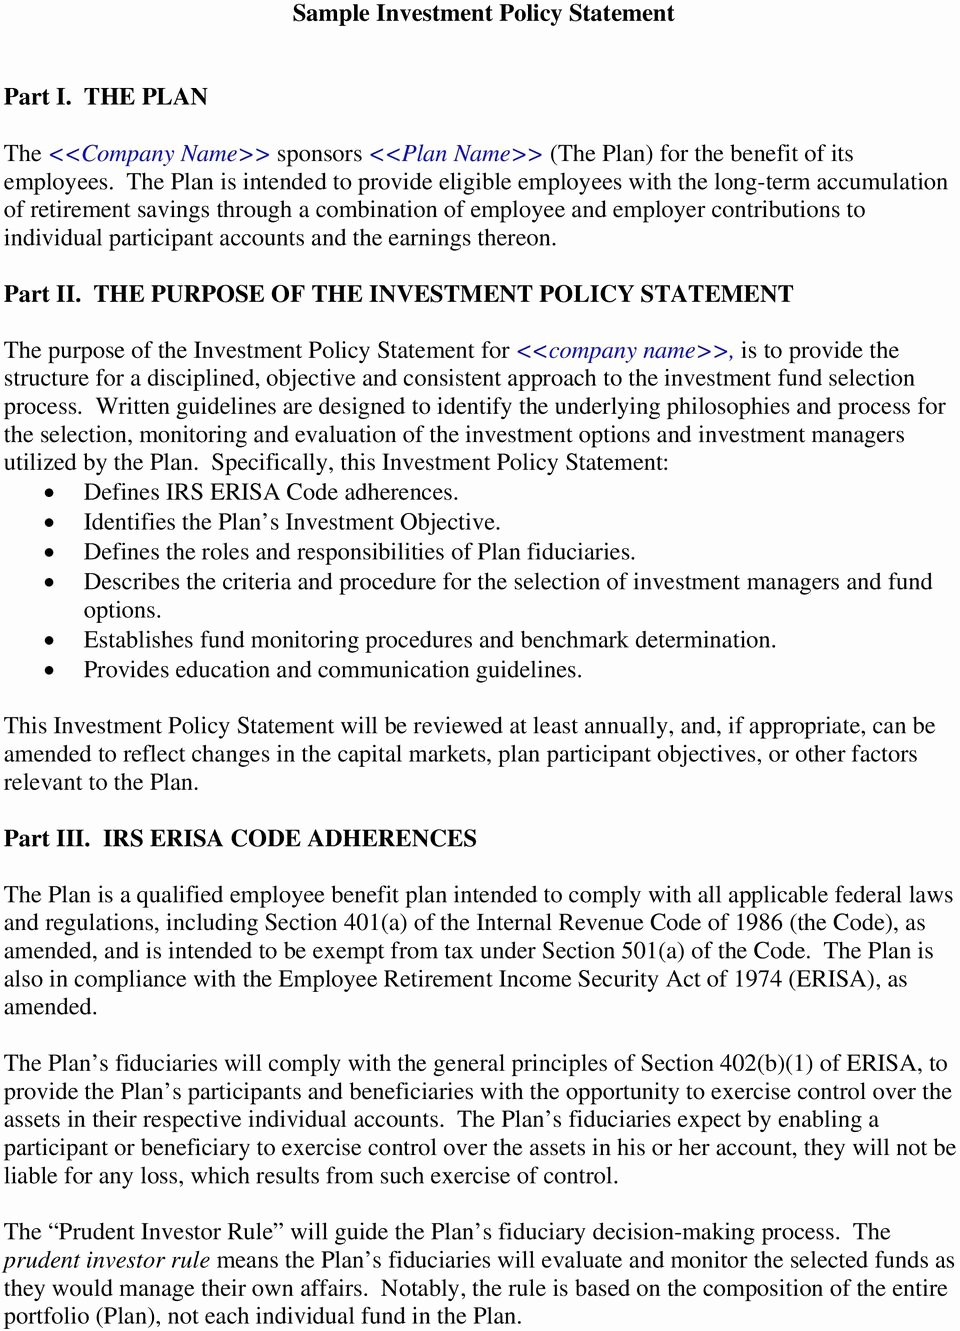 Investment Policy Statement Template Inspirational Sample Investment Policy Statement Pdf